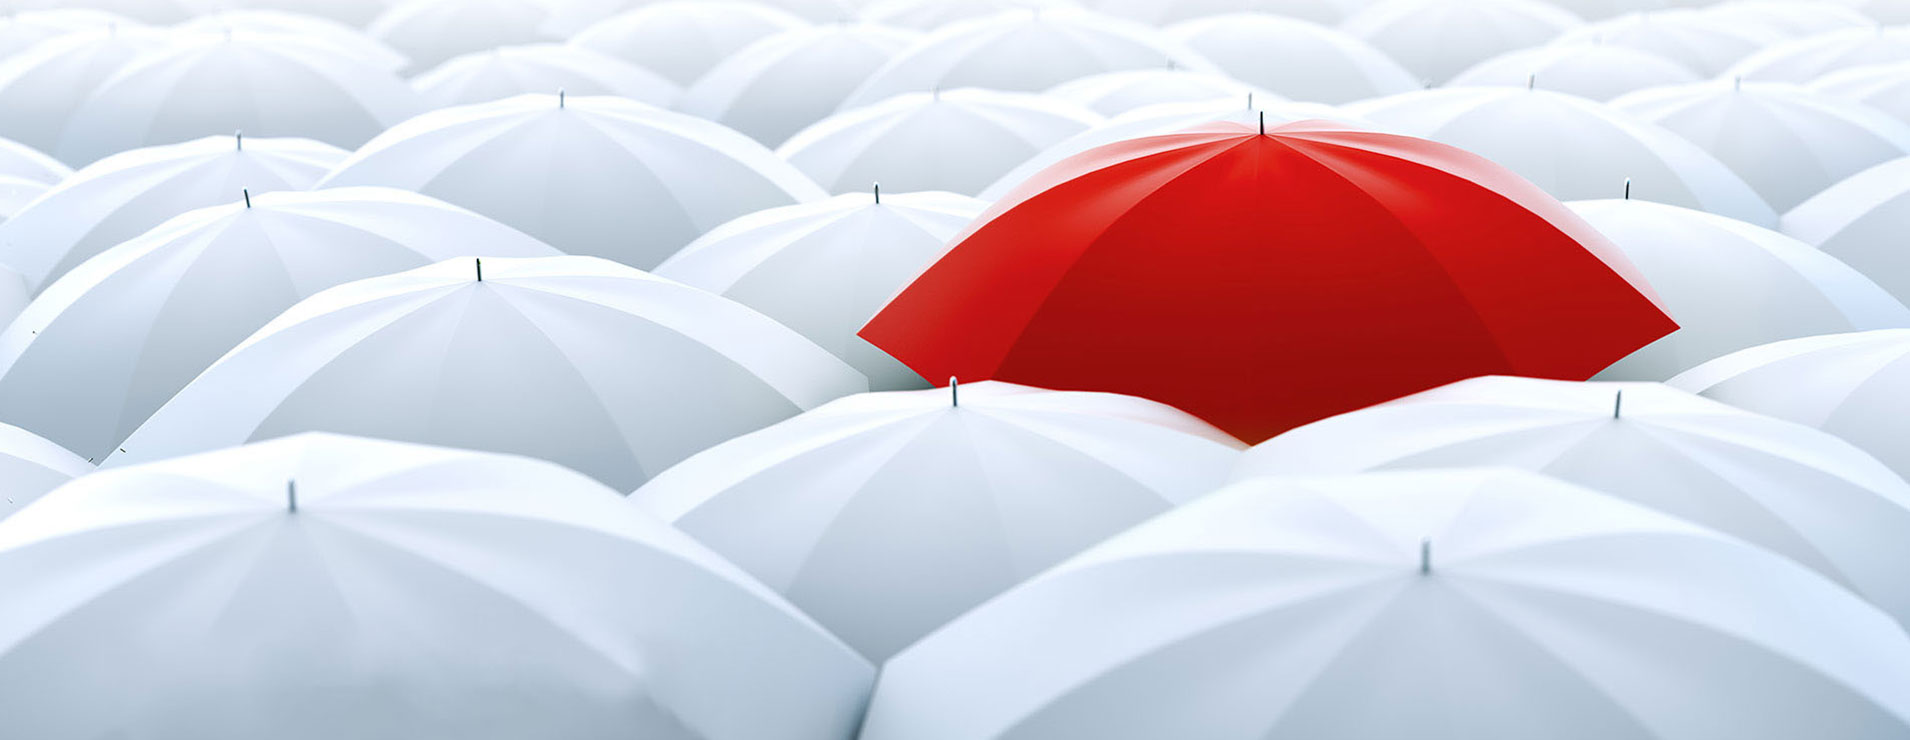 Banner Image of Red Umbrella among white umbrellas